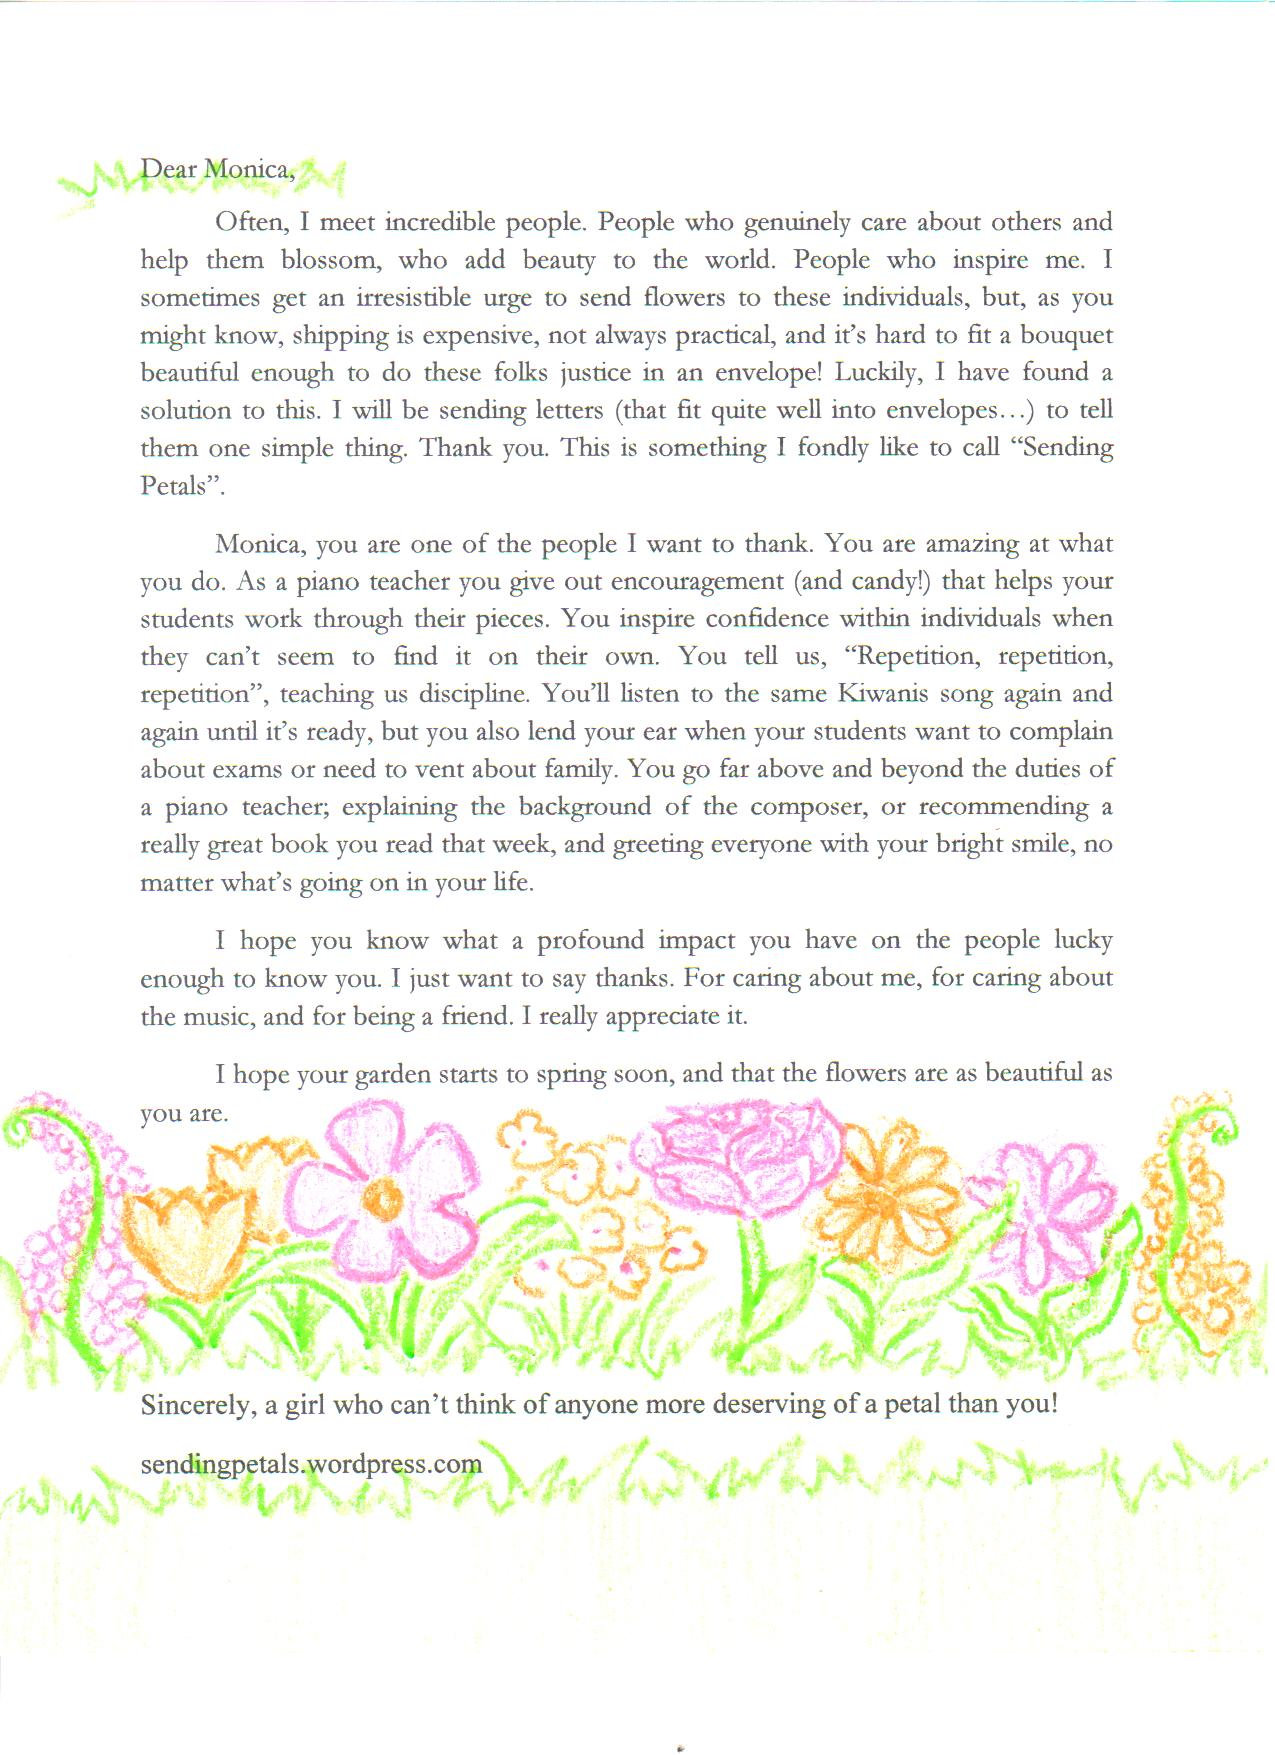 teacher sending petals letter 2 monica the piano teacher